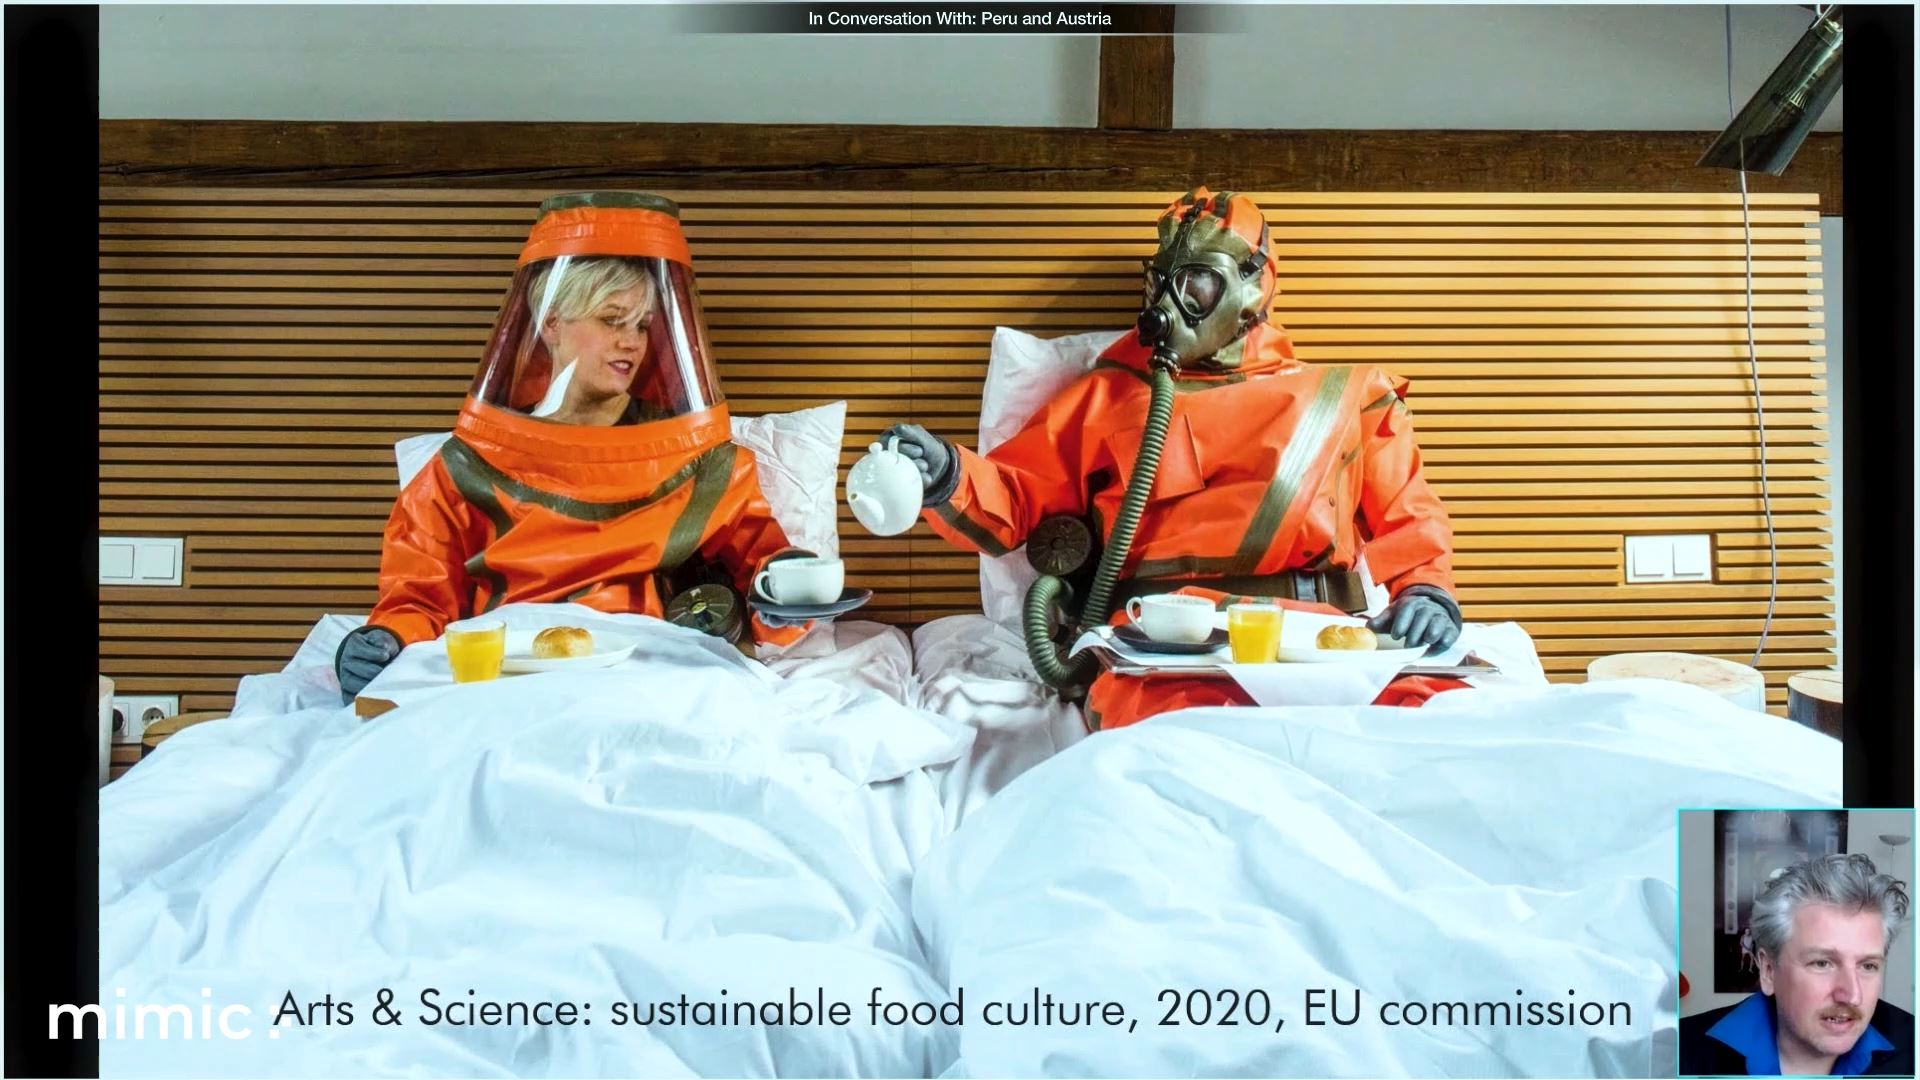 expo 2020 food agriculture livelihoods virtual event video presentation